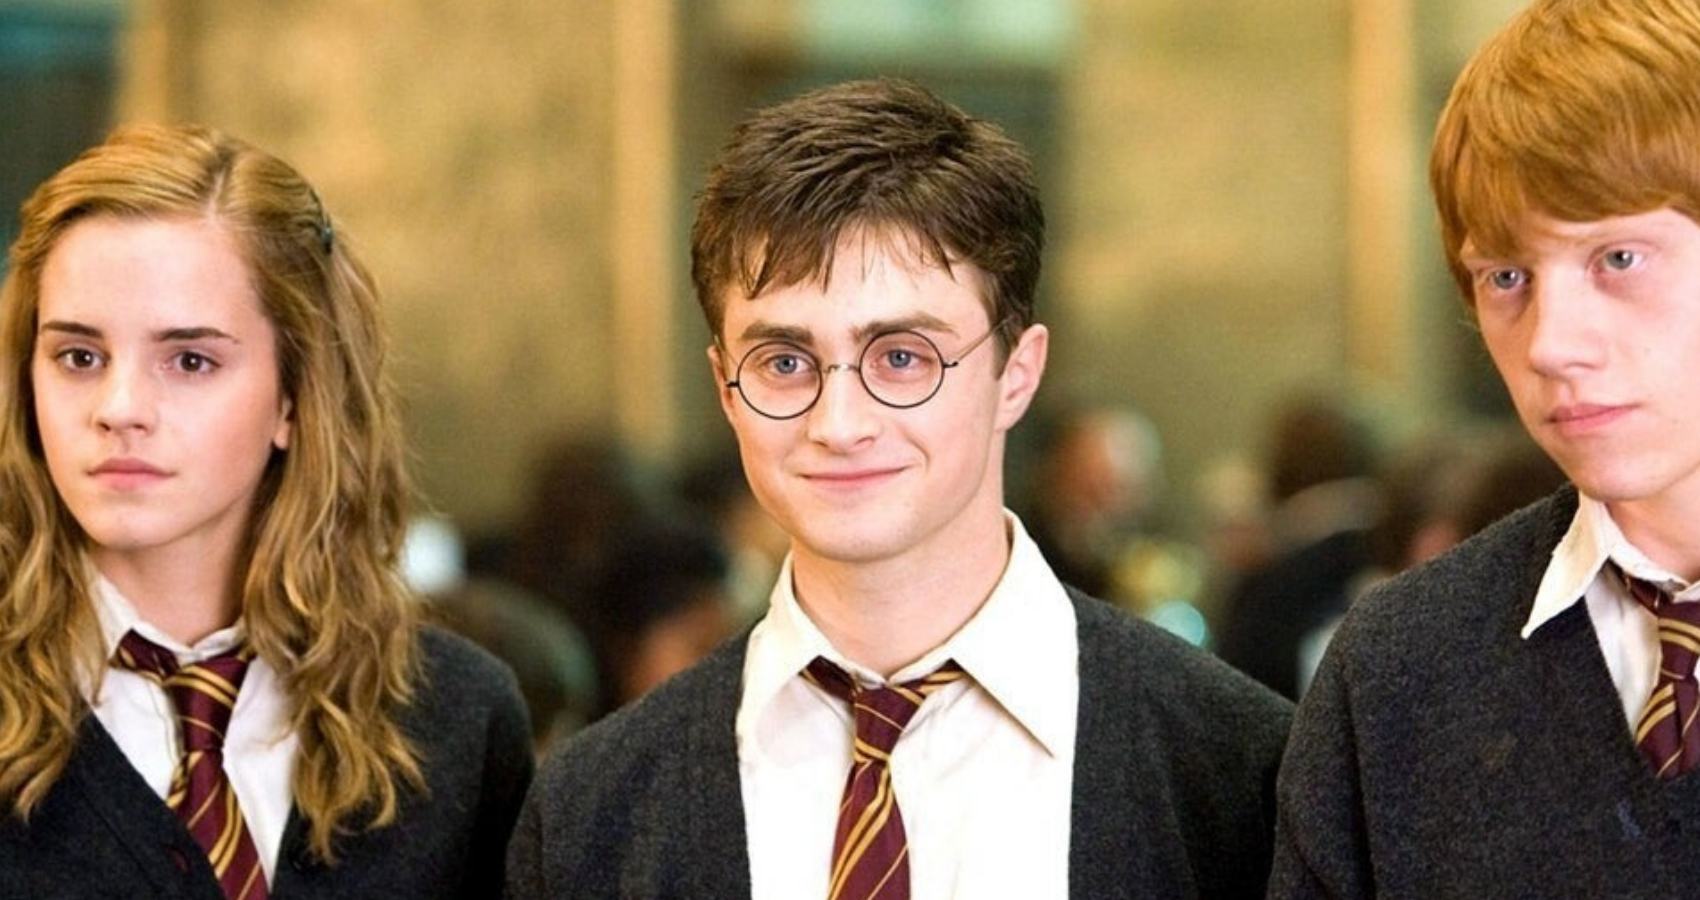 A New Harry Potter Movie Is Coming Sooner Than We Think (So You Can Turn Your Kid Into A Potterhead Too)